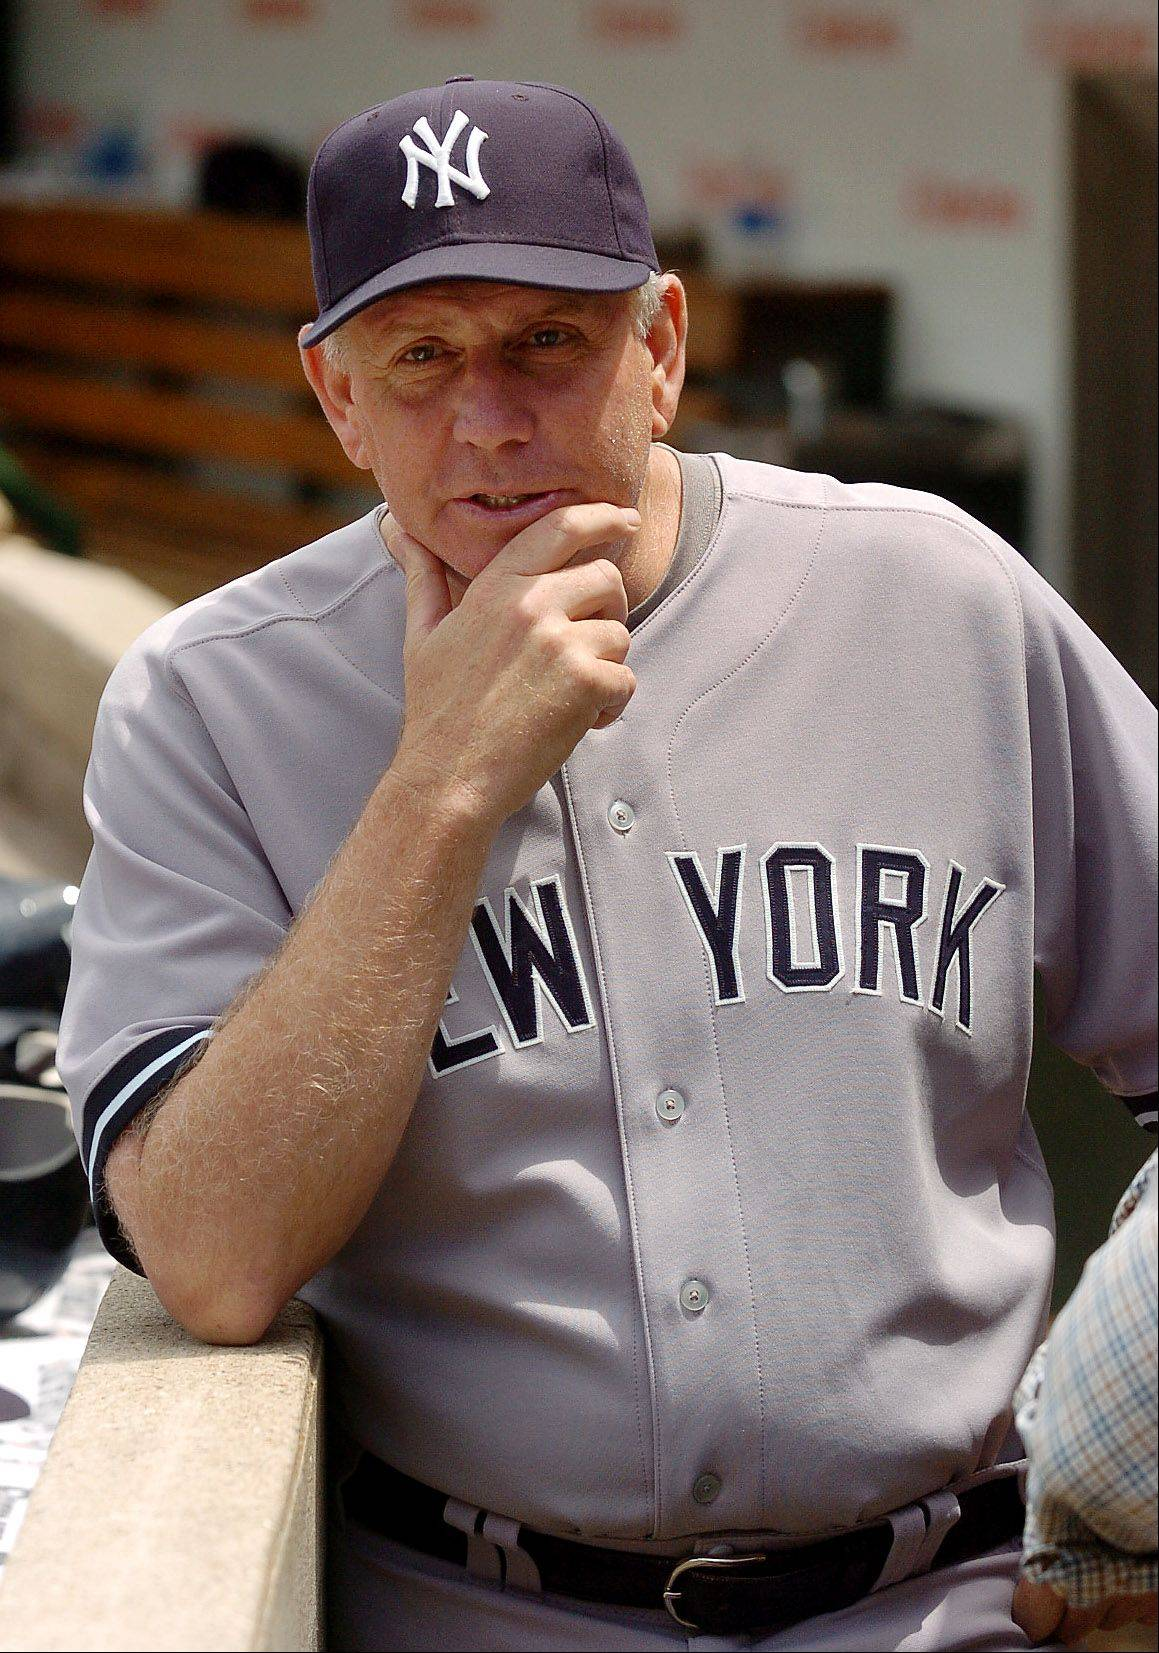 Rothschild misses Chicago, but he's happy with Yankees